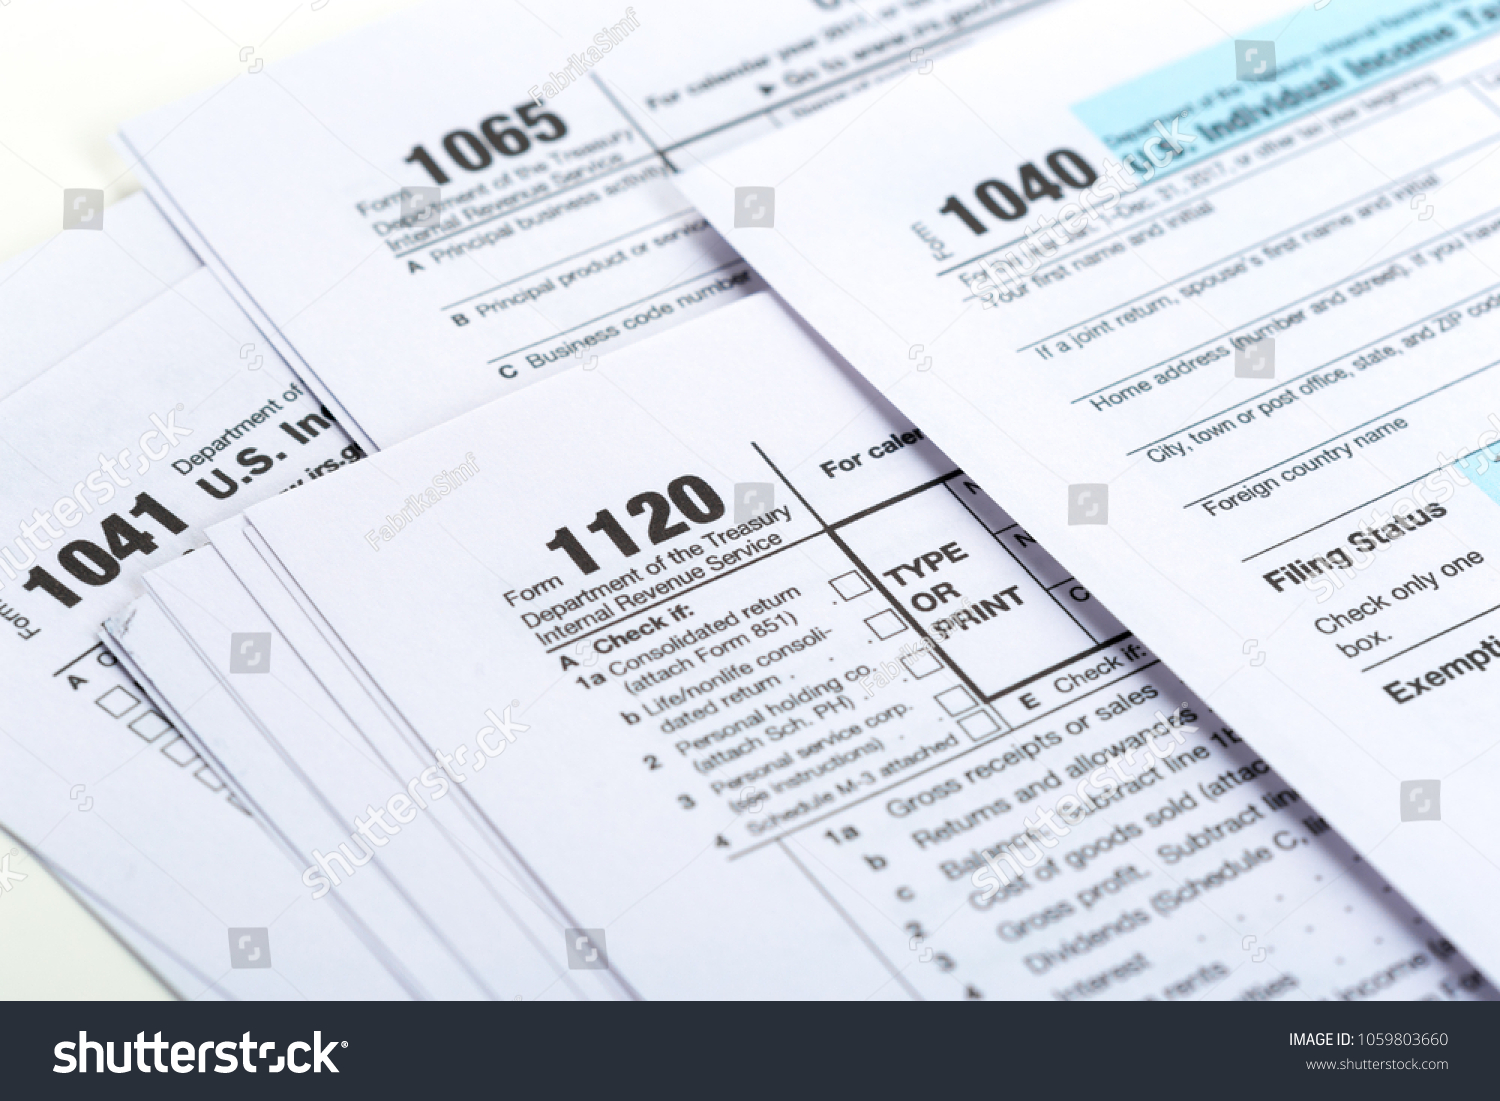 Tax Forms Close Stock Photo (Edit Now) 1059803660 - Shutterstock